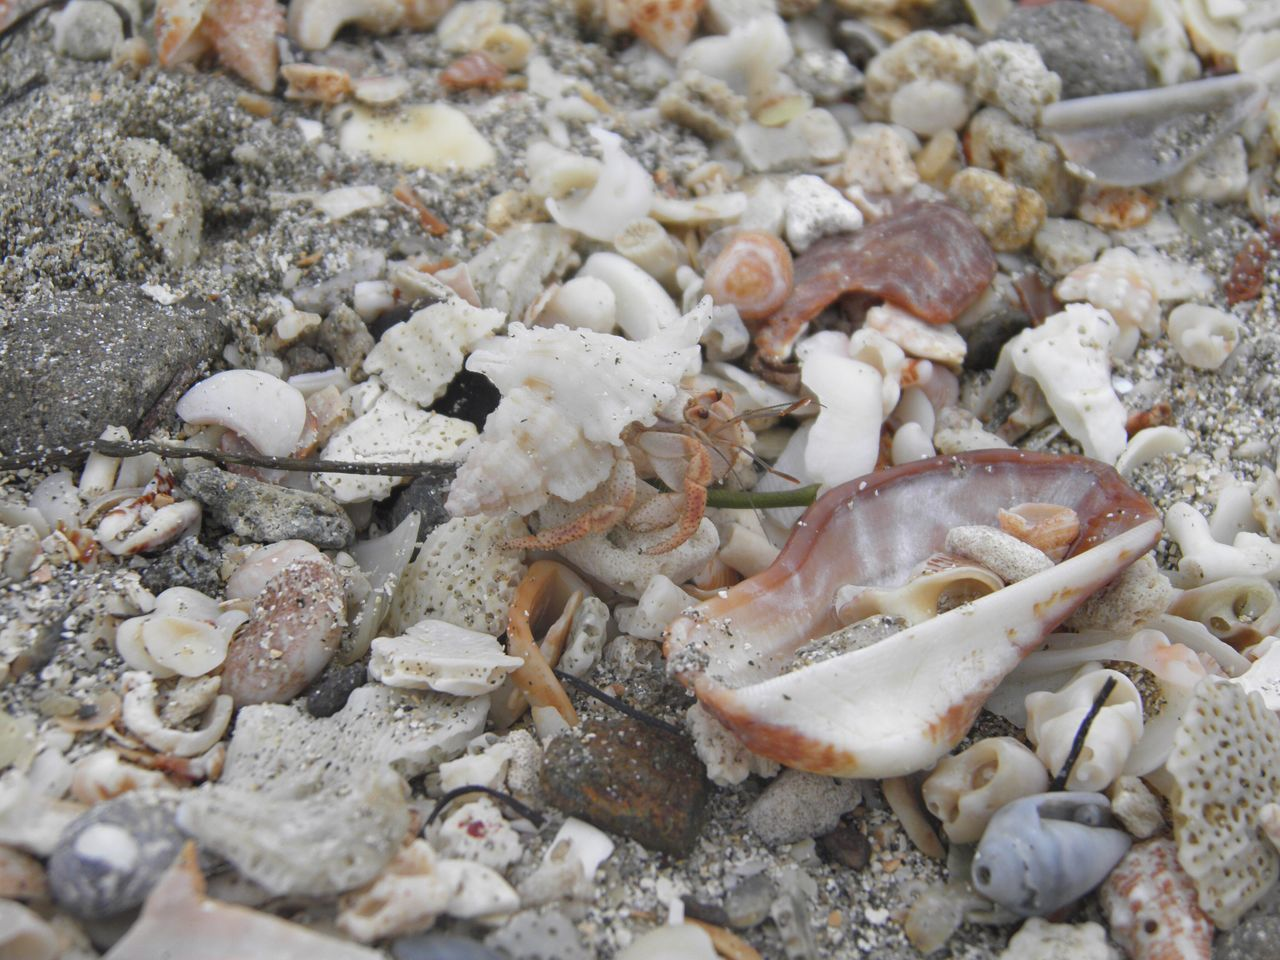 seafood, no people, beach, seashell, pebble, nature, sea life, animal themes, animals in the wild, sand, day, one animal, close-up, animal wildlife, food, outdoors, sea, freshness